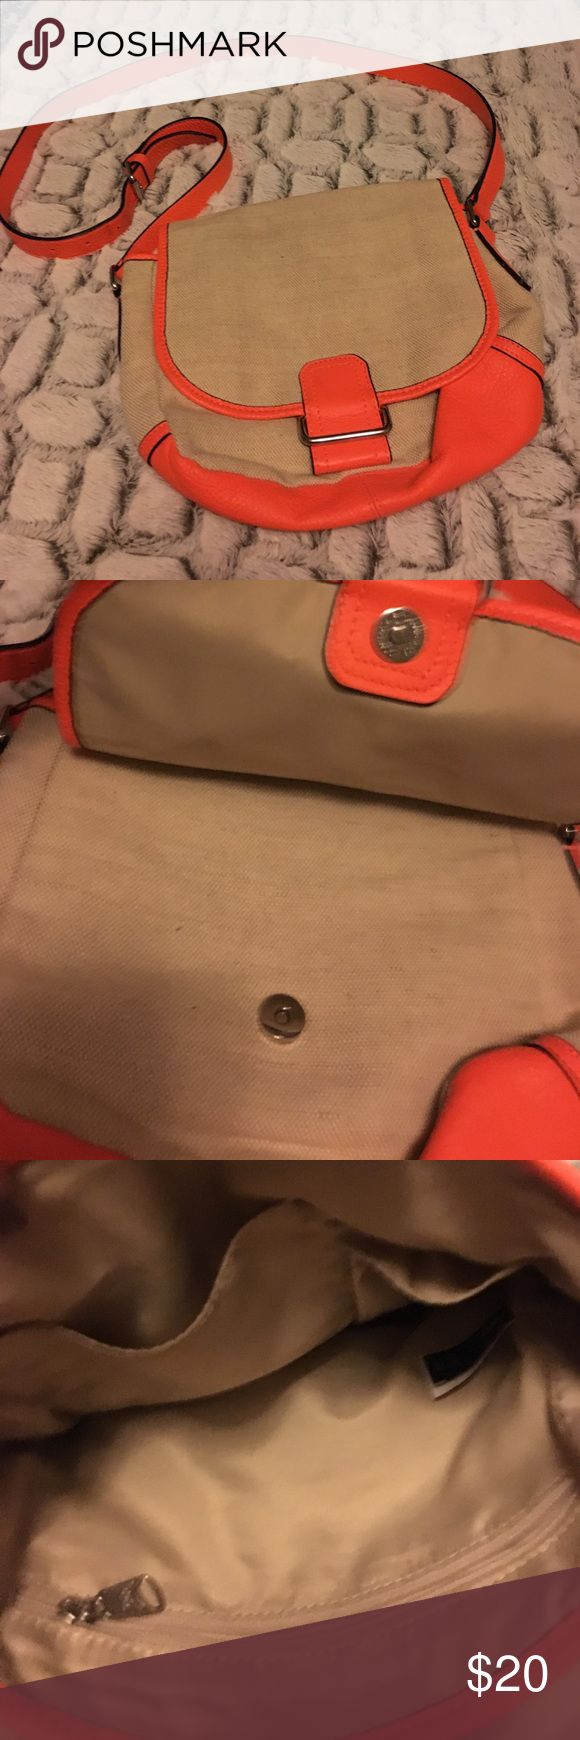 Gap Crossbody Bag New without tags GAP Bags Crossbody Bags